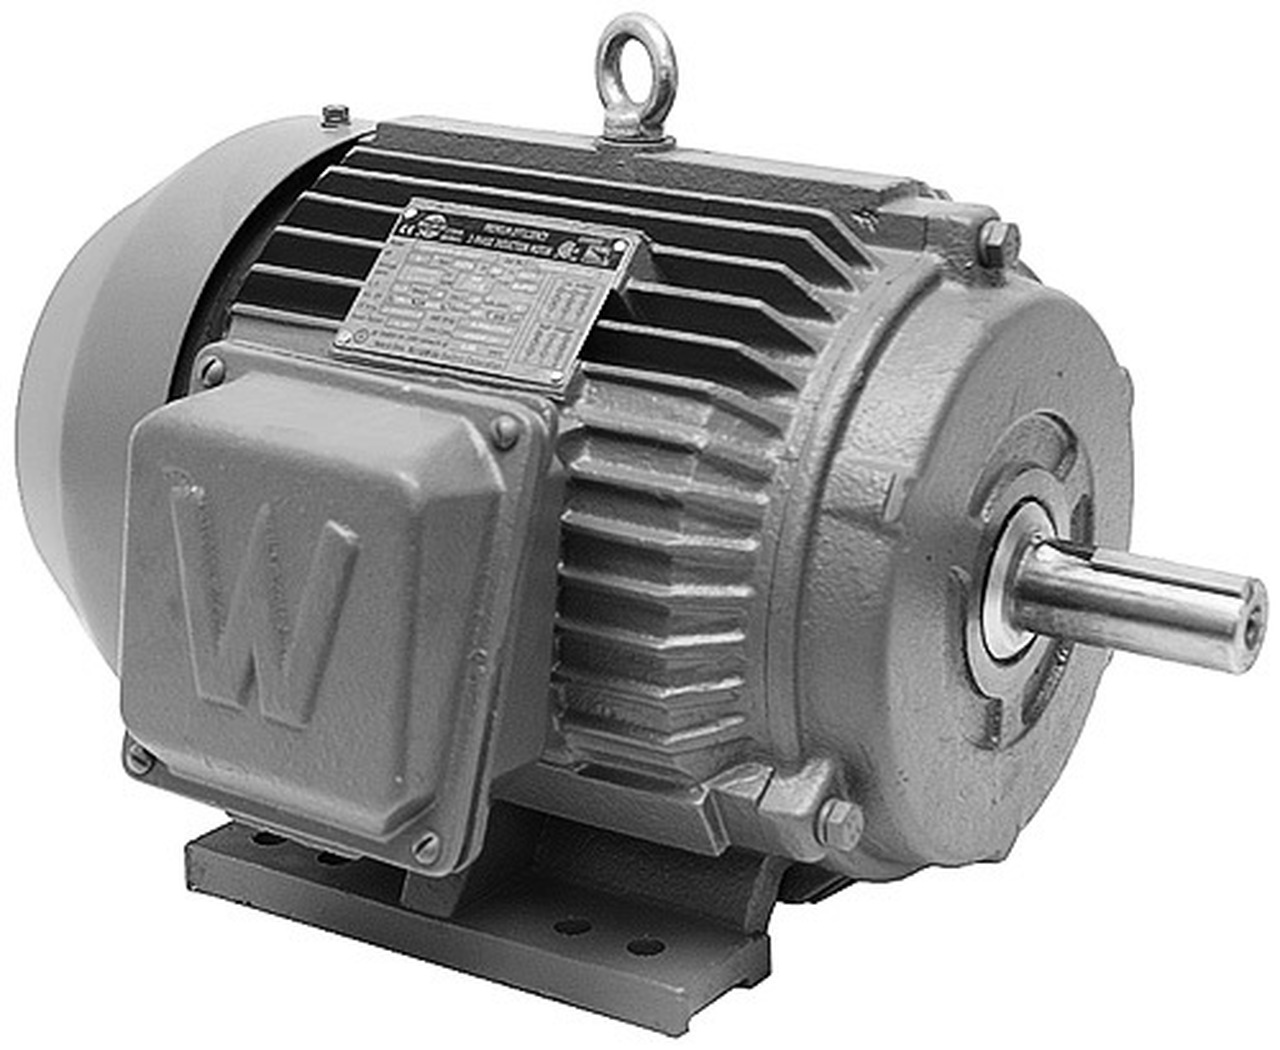 7 5 hp 3 phase electric motor hamby dairy supply for 7 5 hp three phase motor